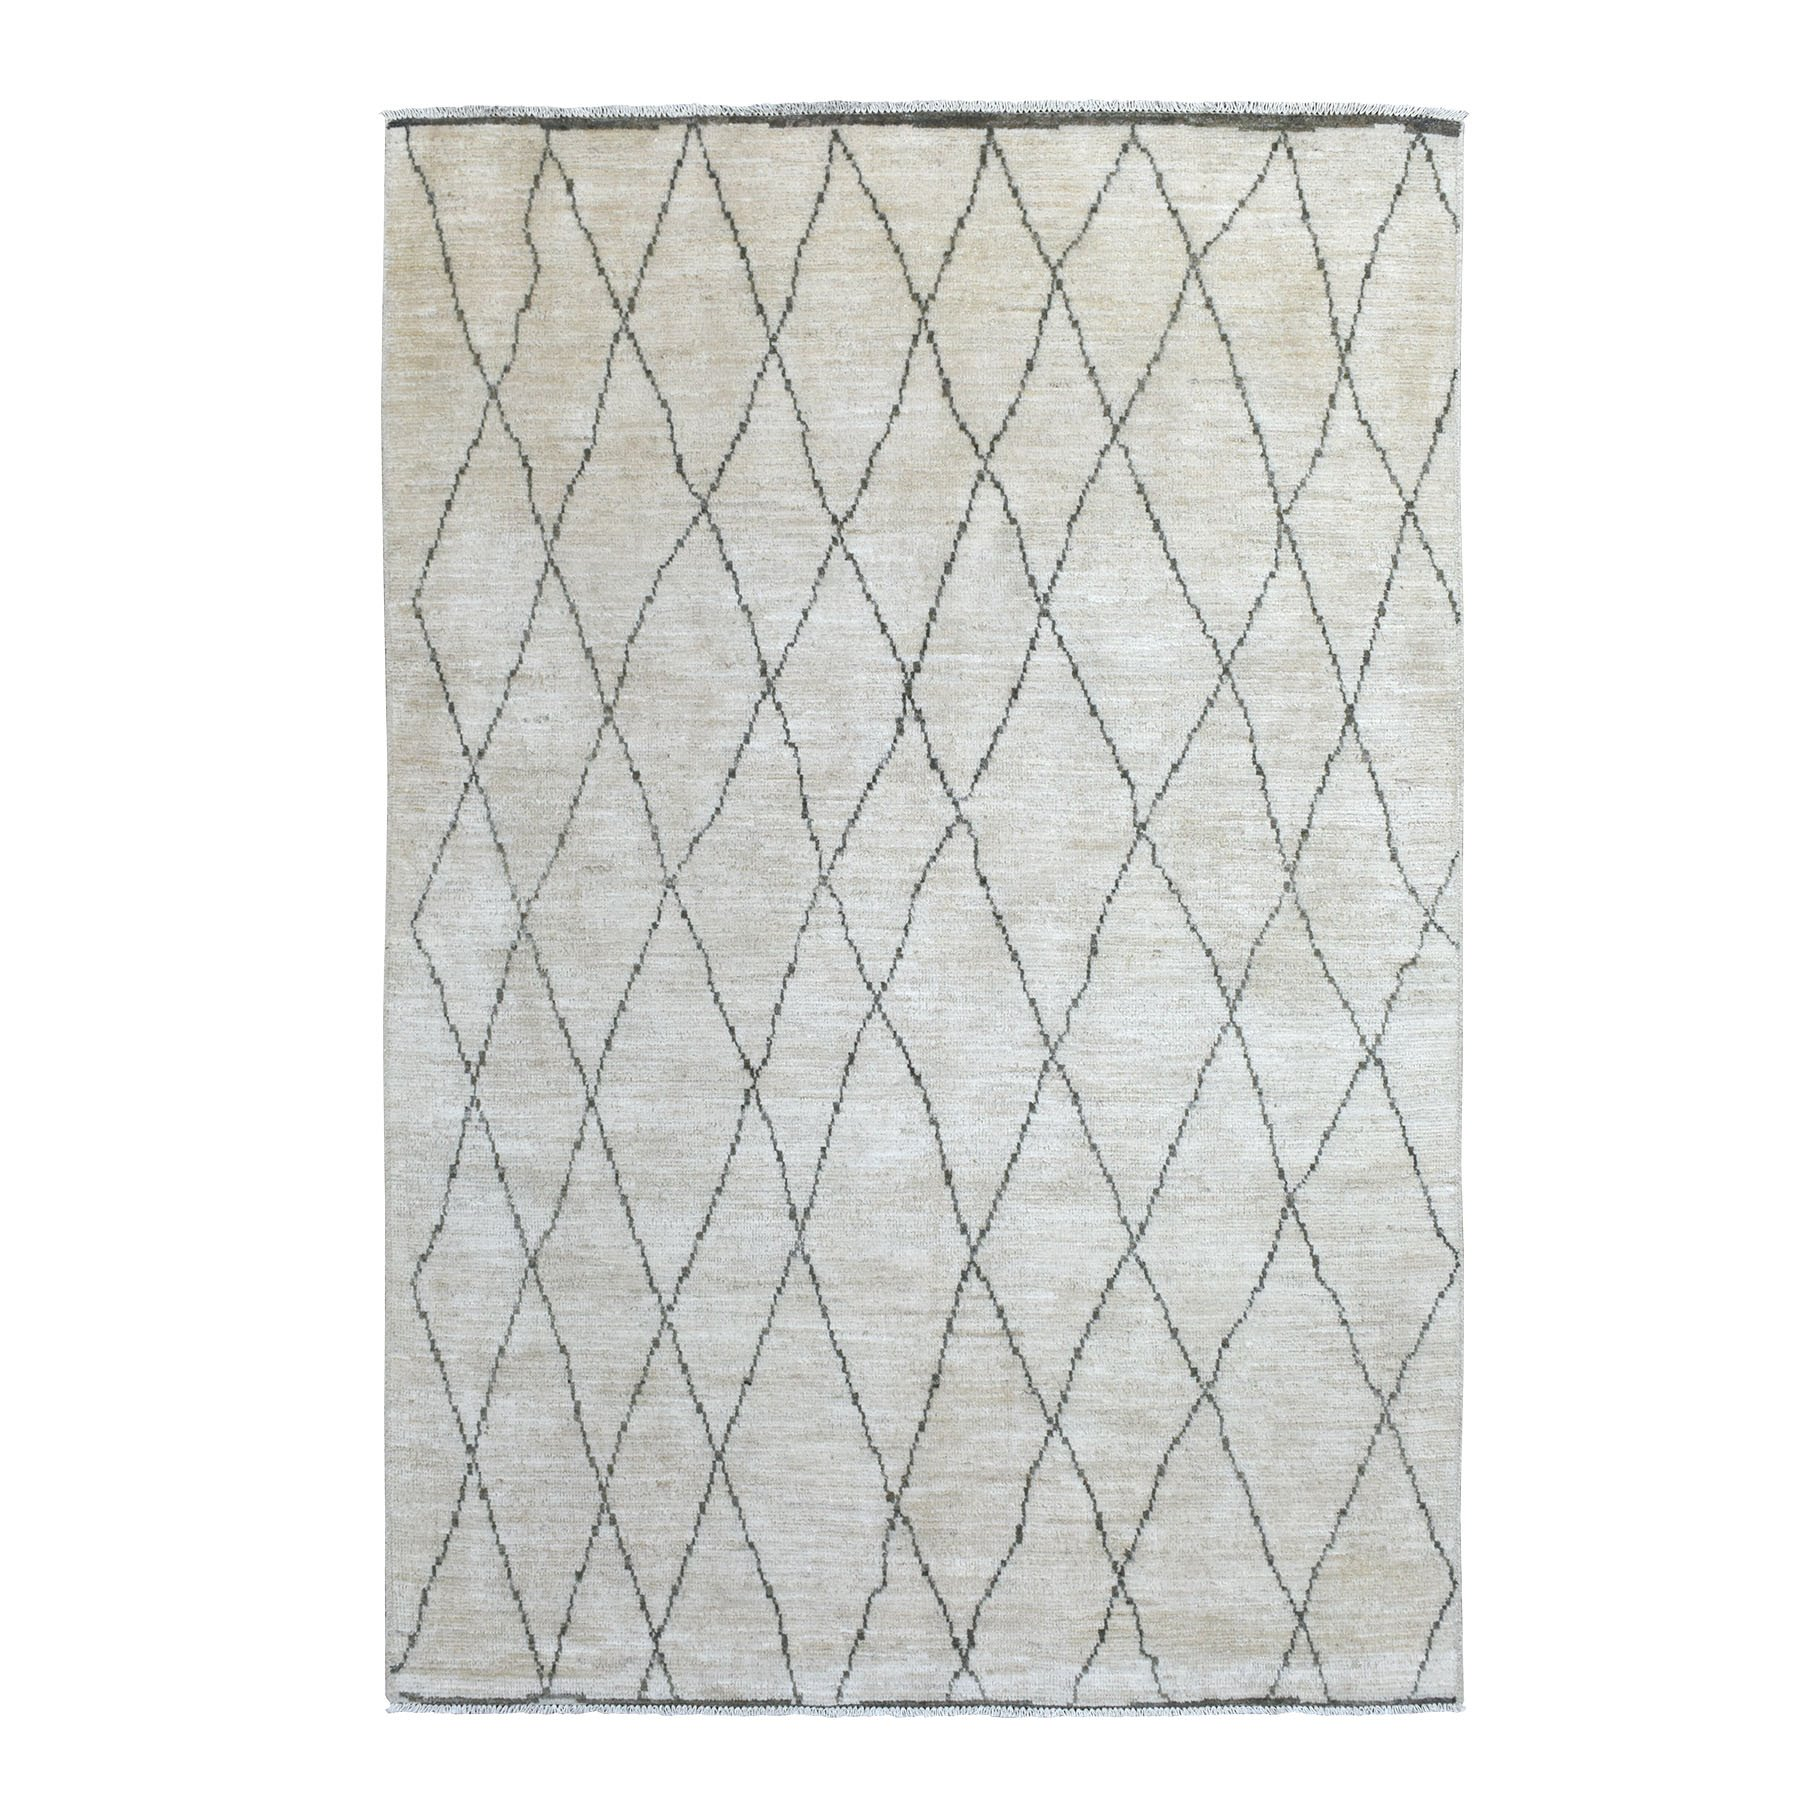 Nomadic And Village Collection Hand Knotted Ivory Rug No: 1139380